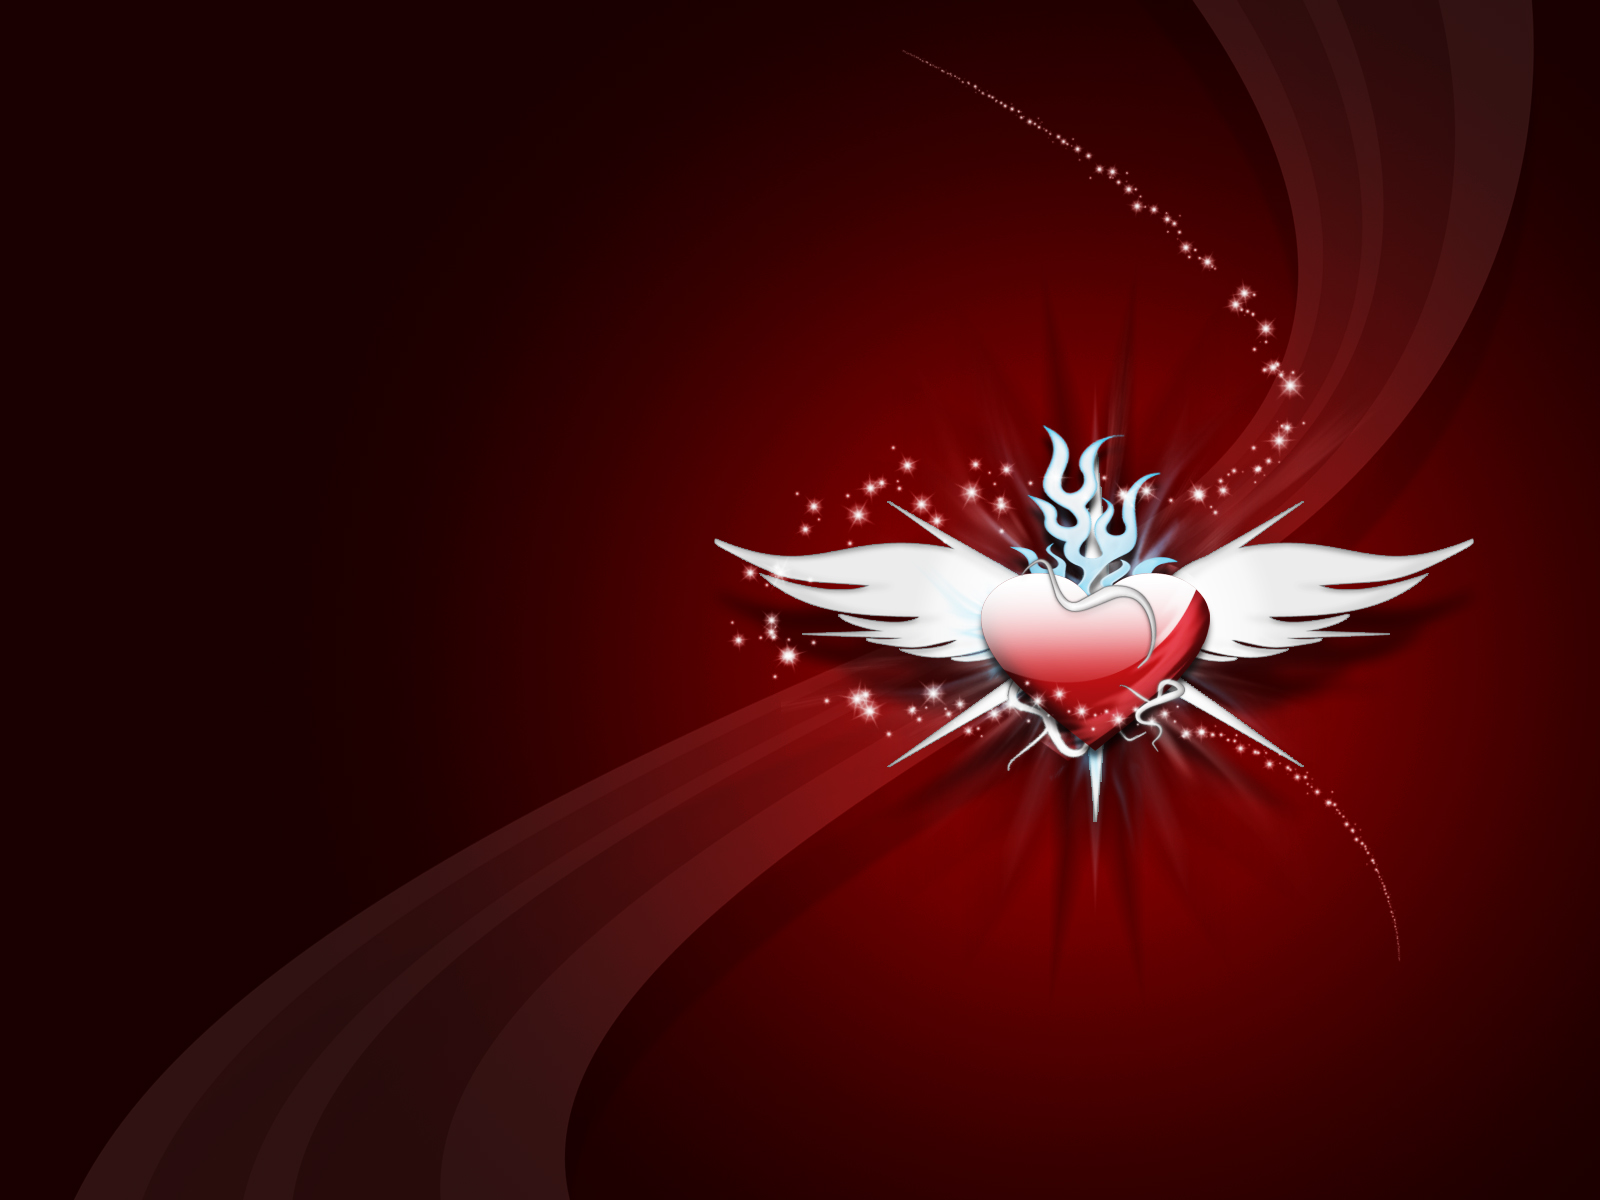 Artistic - Love  Artistic Wings Heart Wallpaper